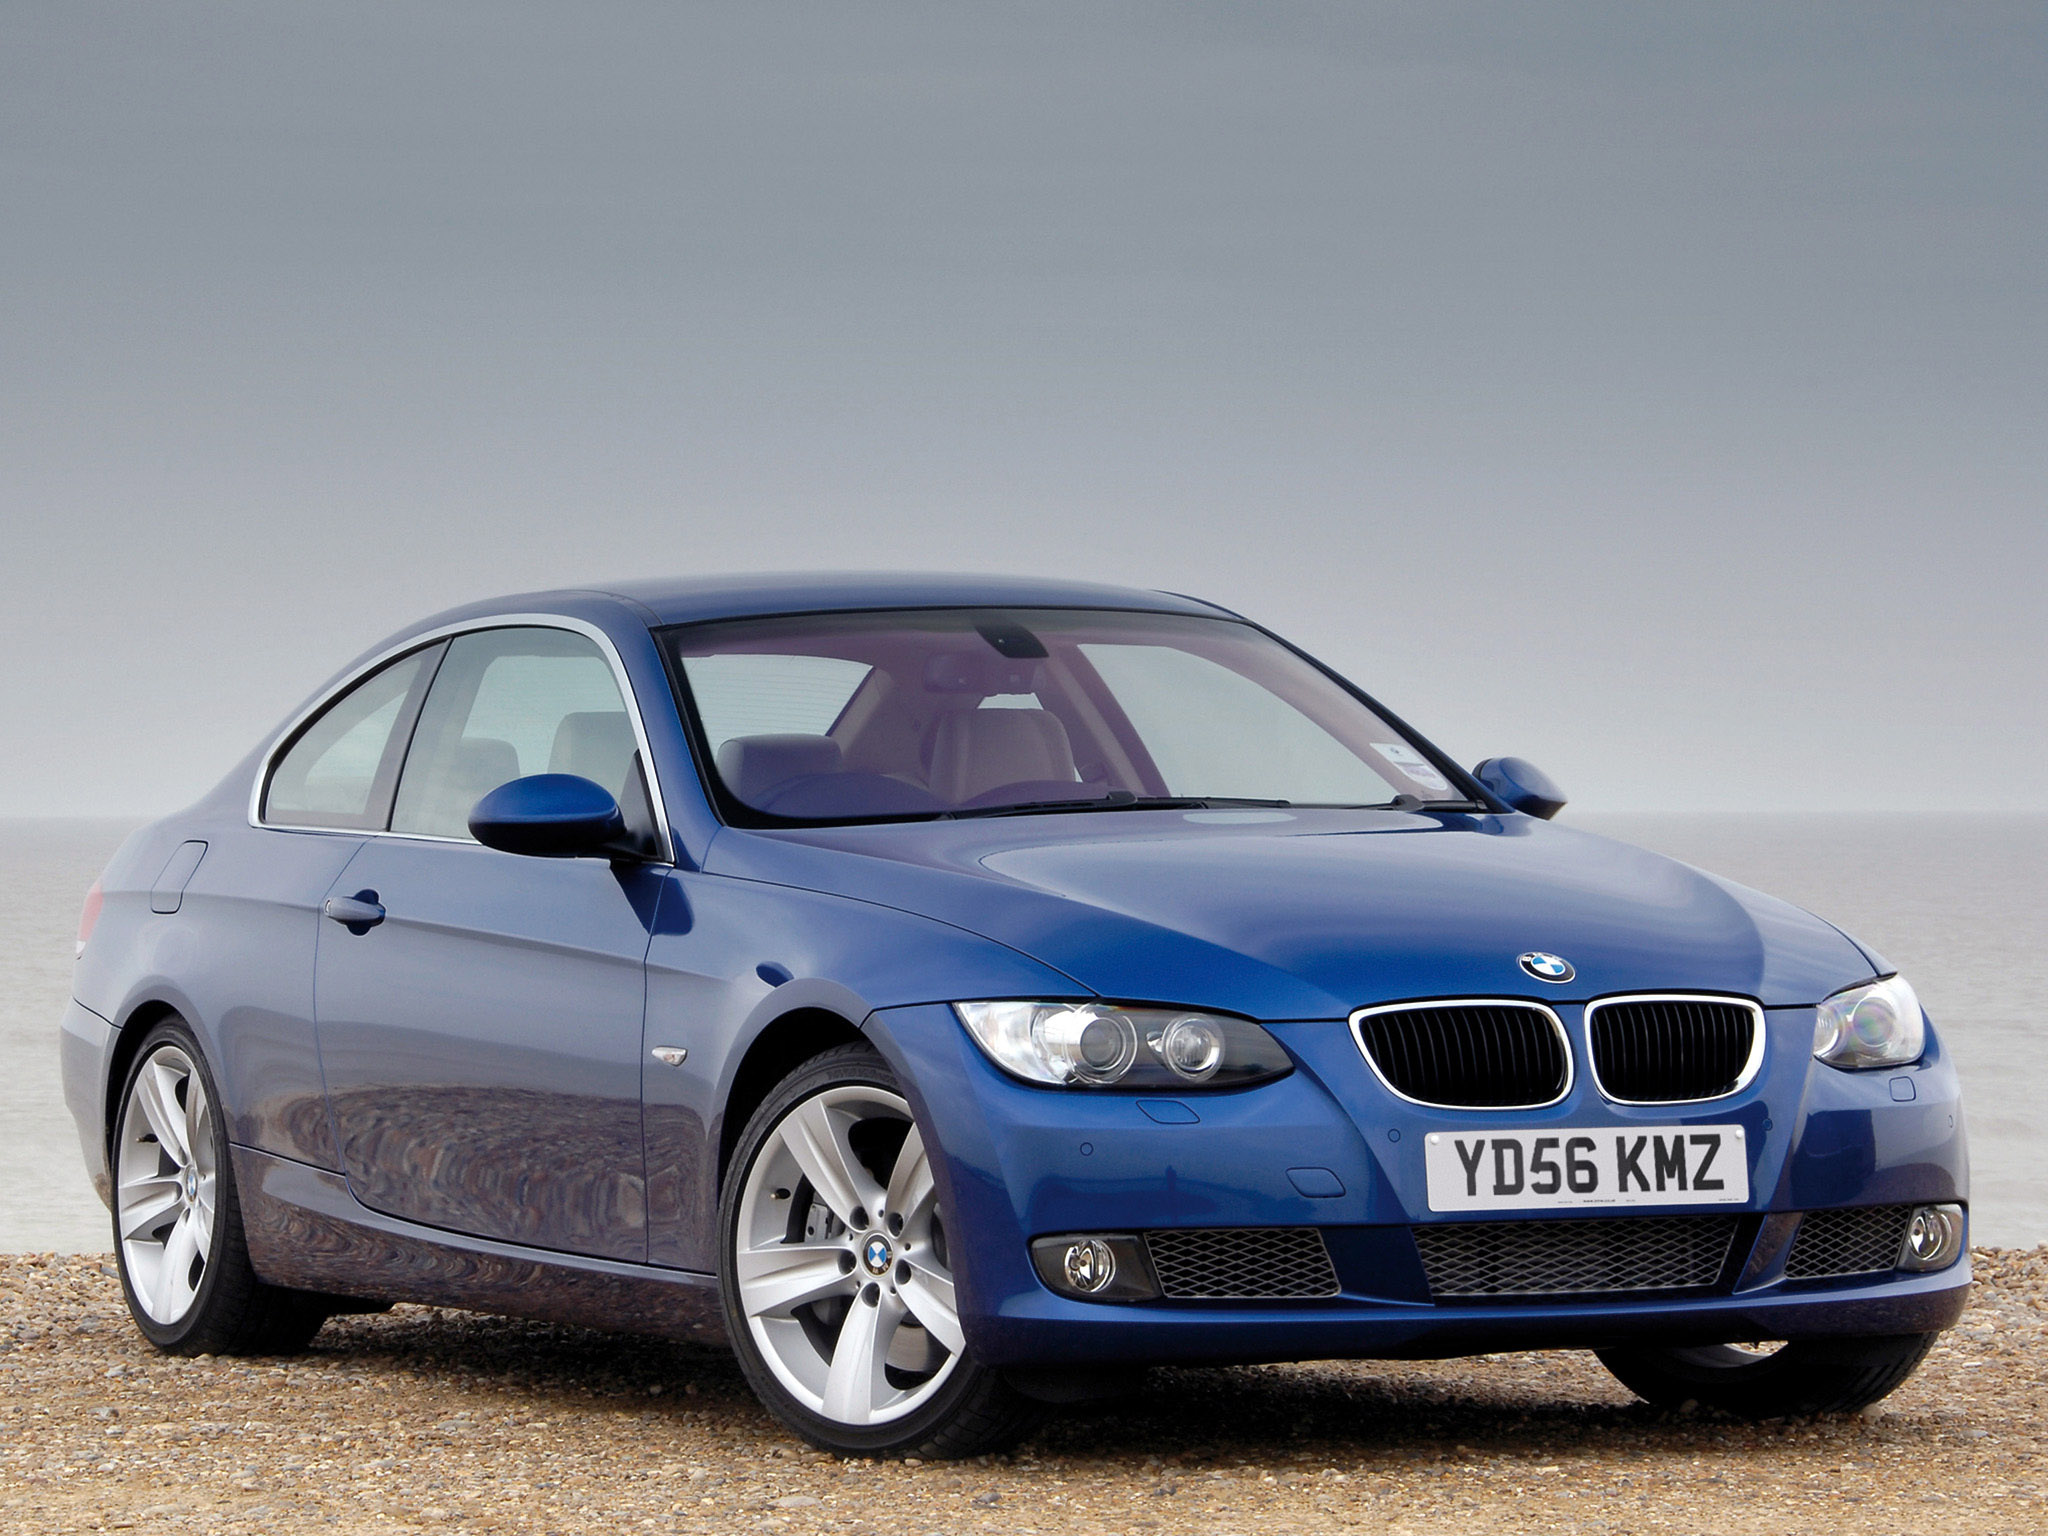 bmw 3 series 335i coupe uk e92 2008 bmw 3 series 335i. Black Bedroom Furniture Sets. Home Design Ideas